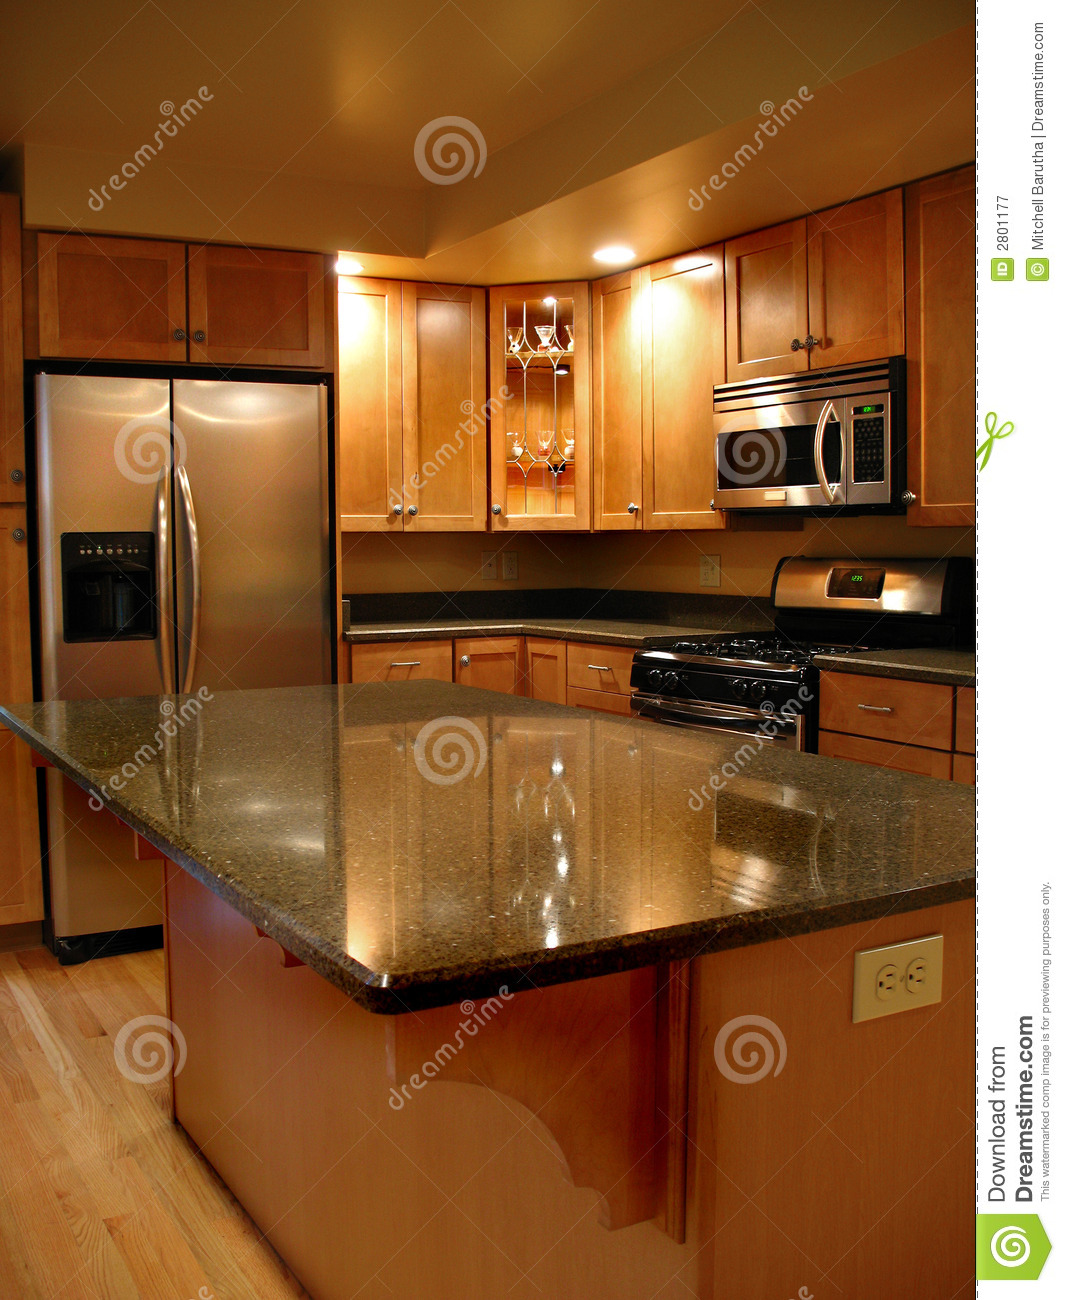 Upscale Kitchen Vertical Stock Image Image Of Counter